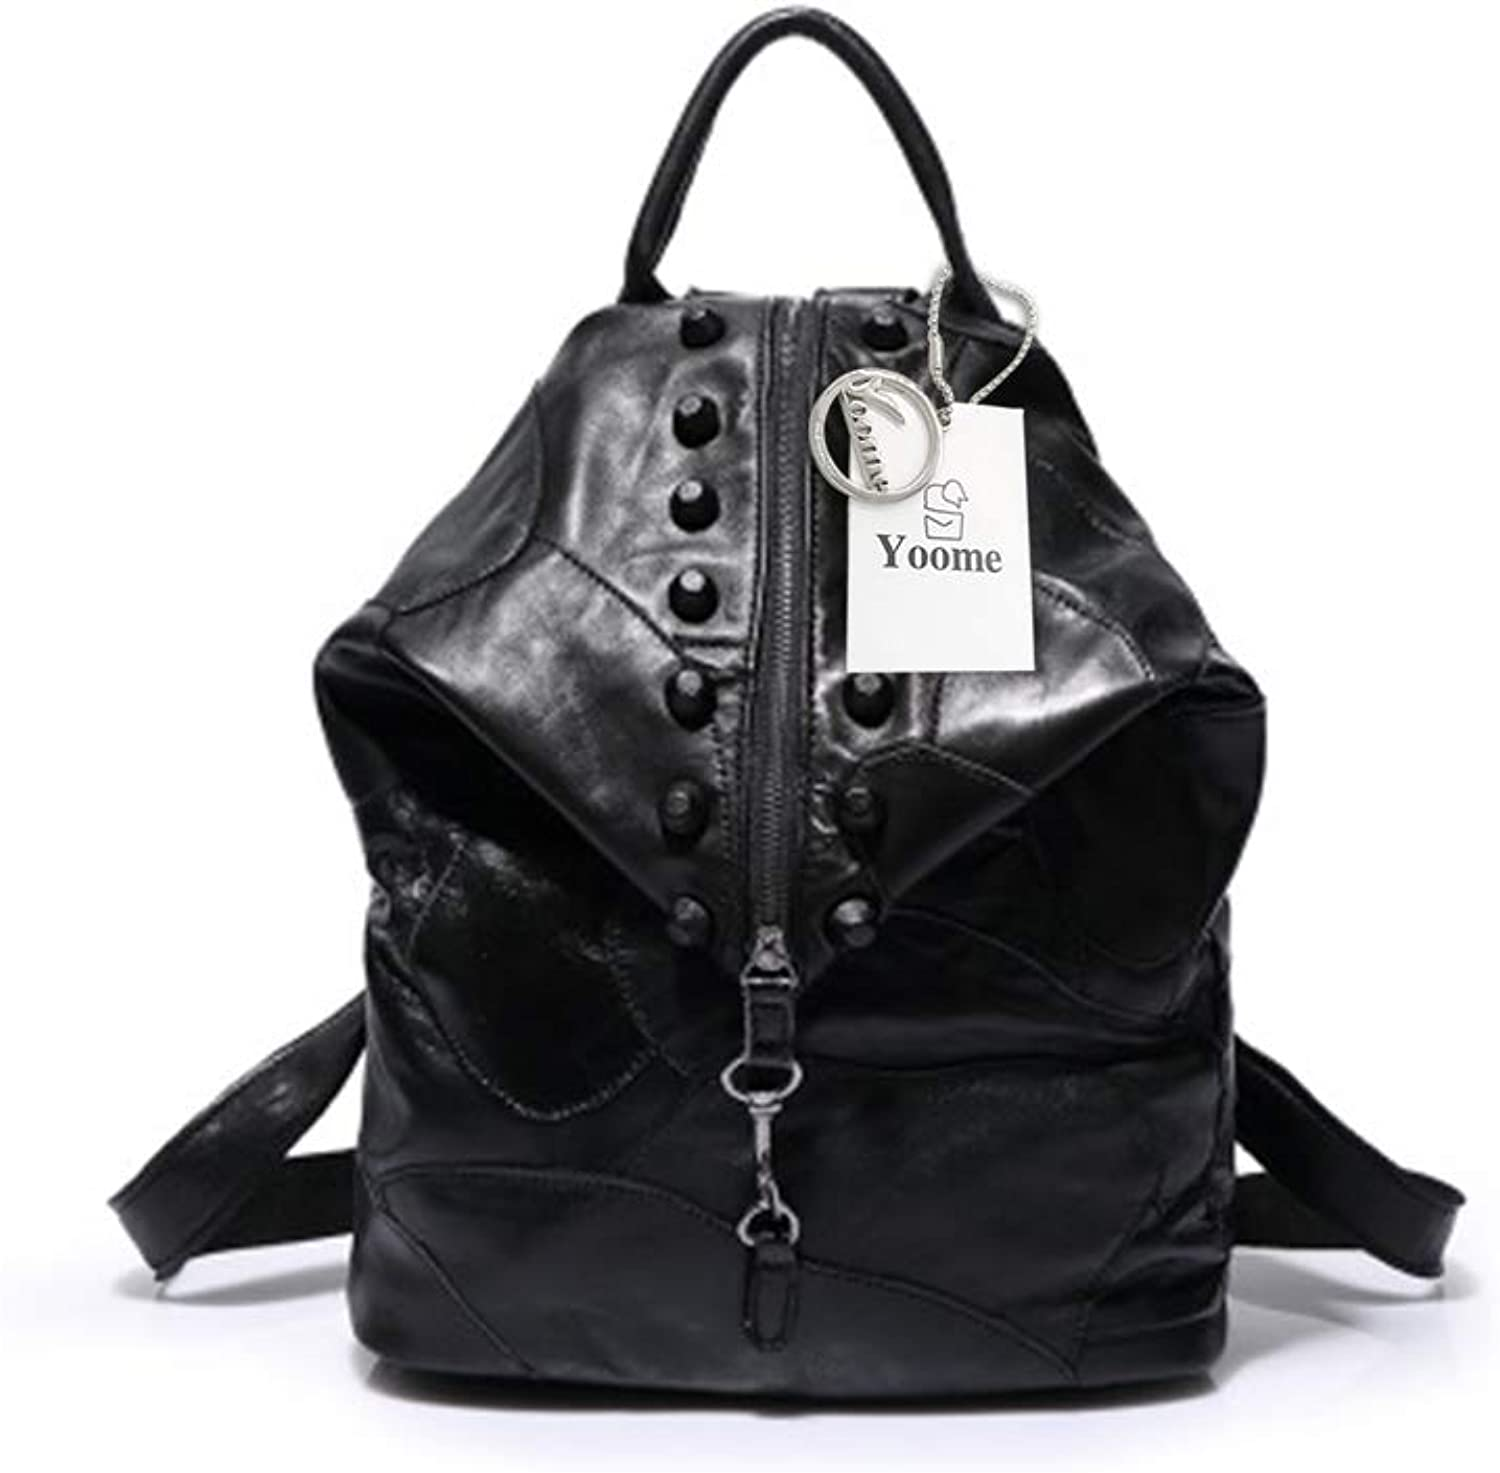 Yoome Patchwork Leather Backpack for Women Fashion Rivets Travel Bag Leisure Daypack